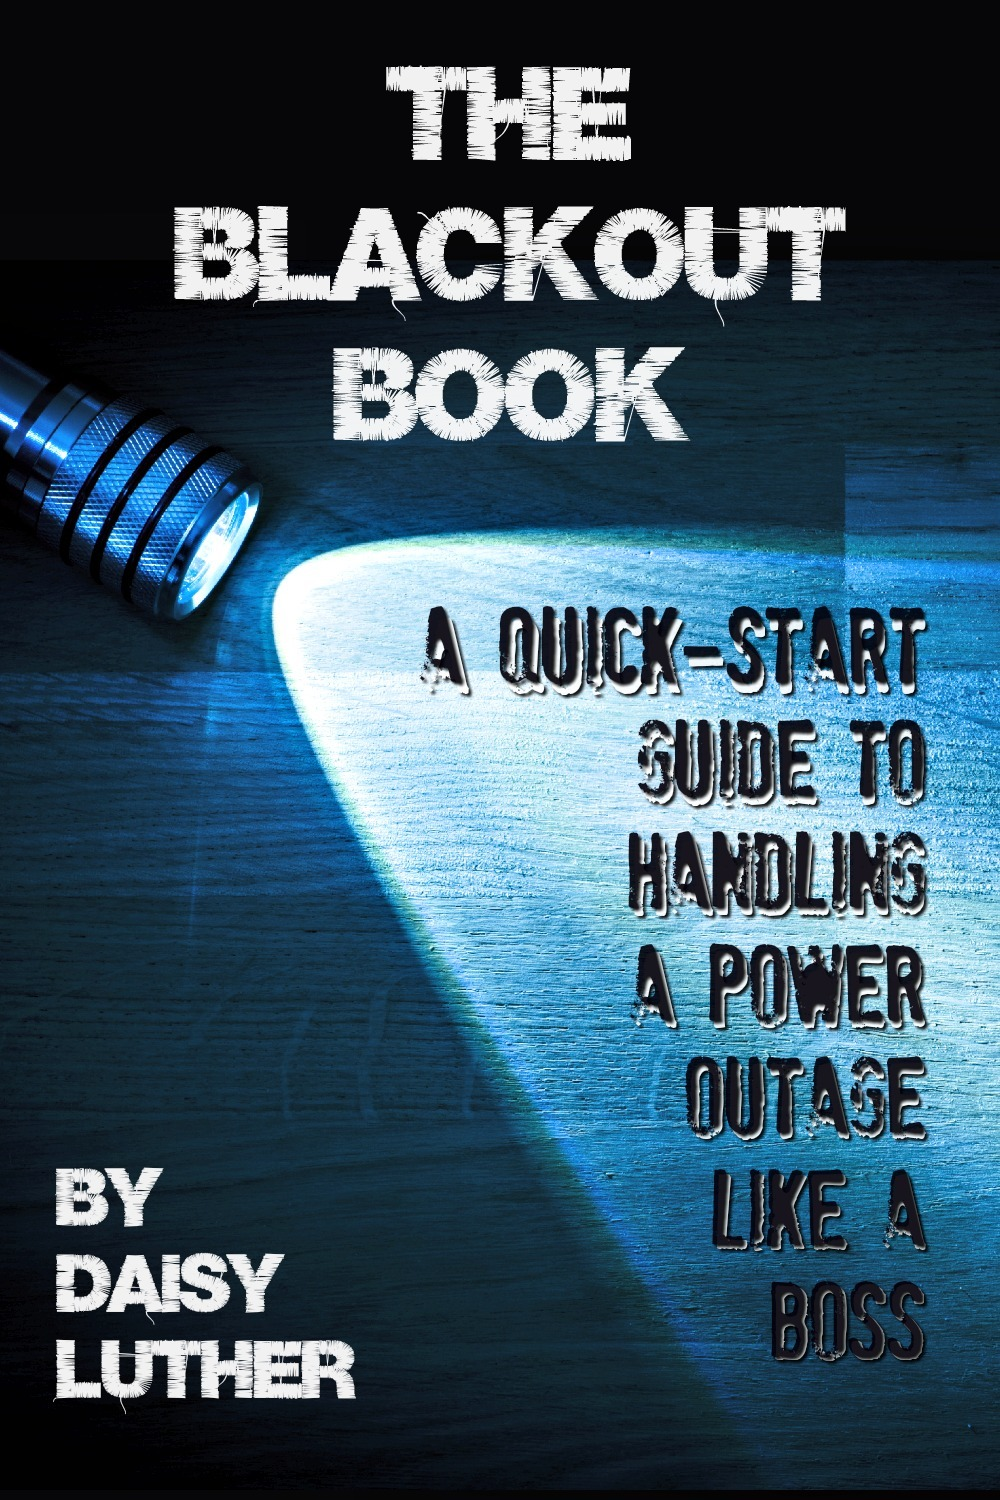 The Blackout Book is your quick-start guide to handling a power outage like a boss. It's written to be friendly and helpful to beginners and those with a bit more experience.